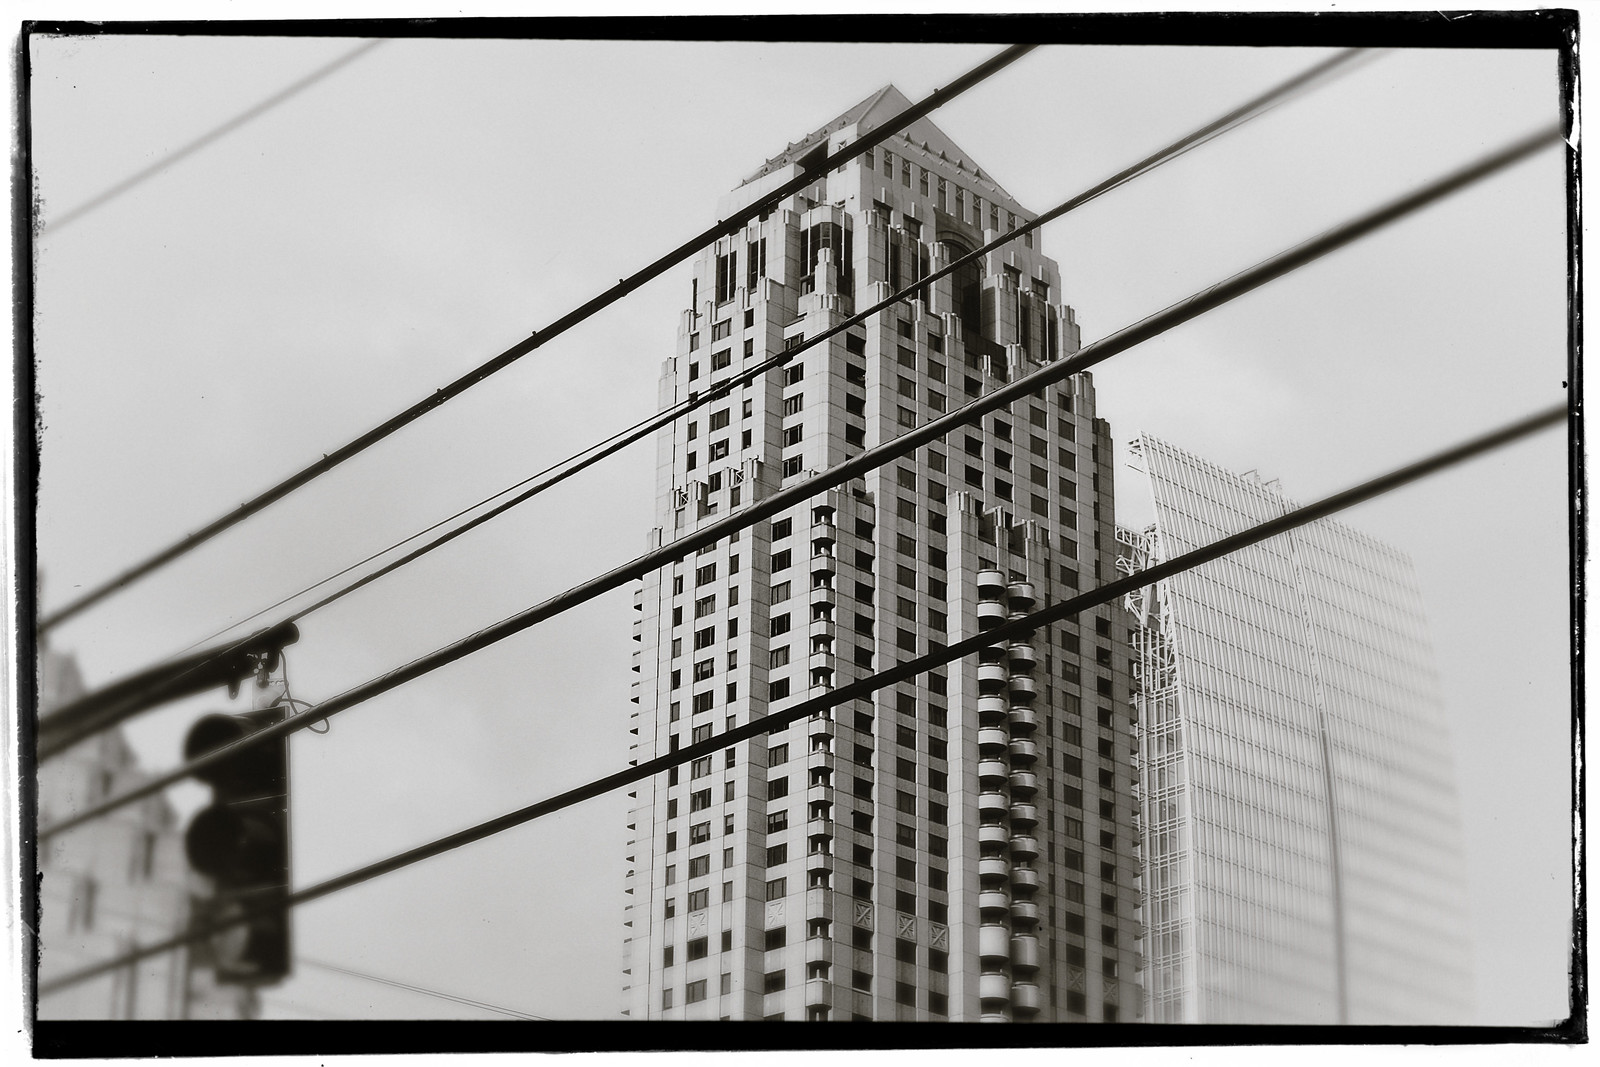 The Four Seasons Hotel and Symphony Tower, Midtown, Atlanta